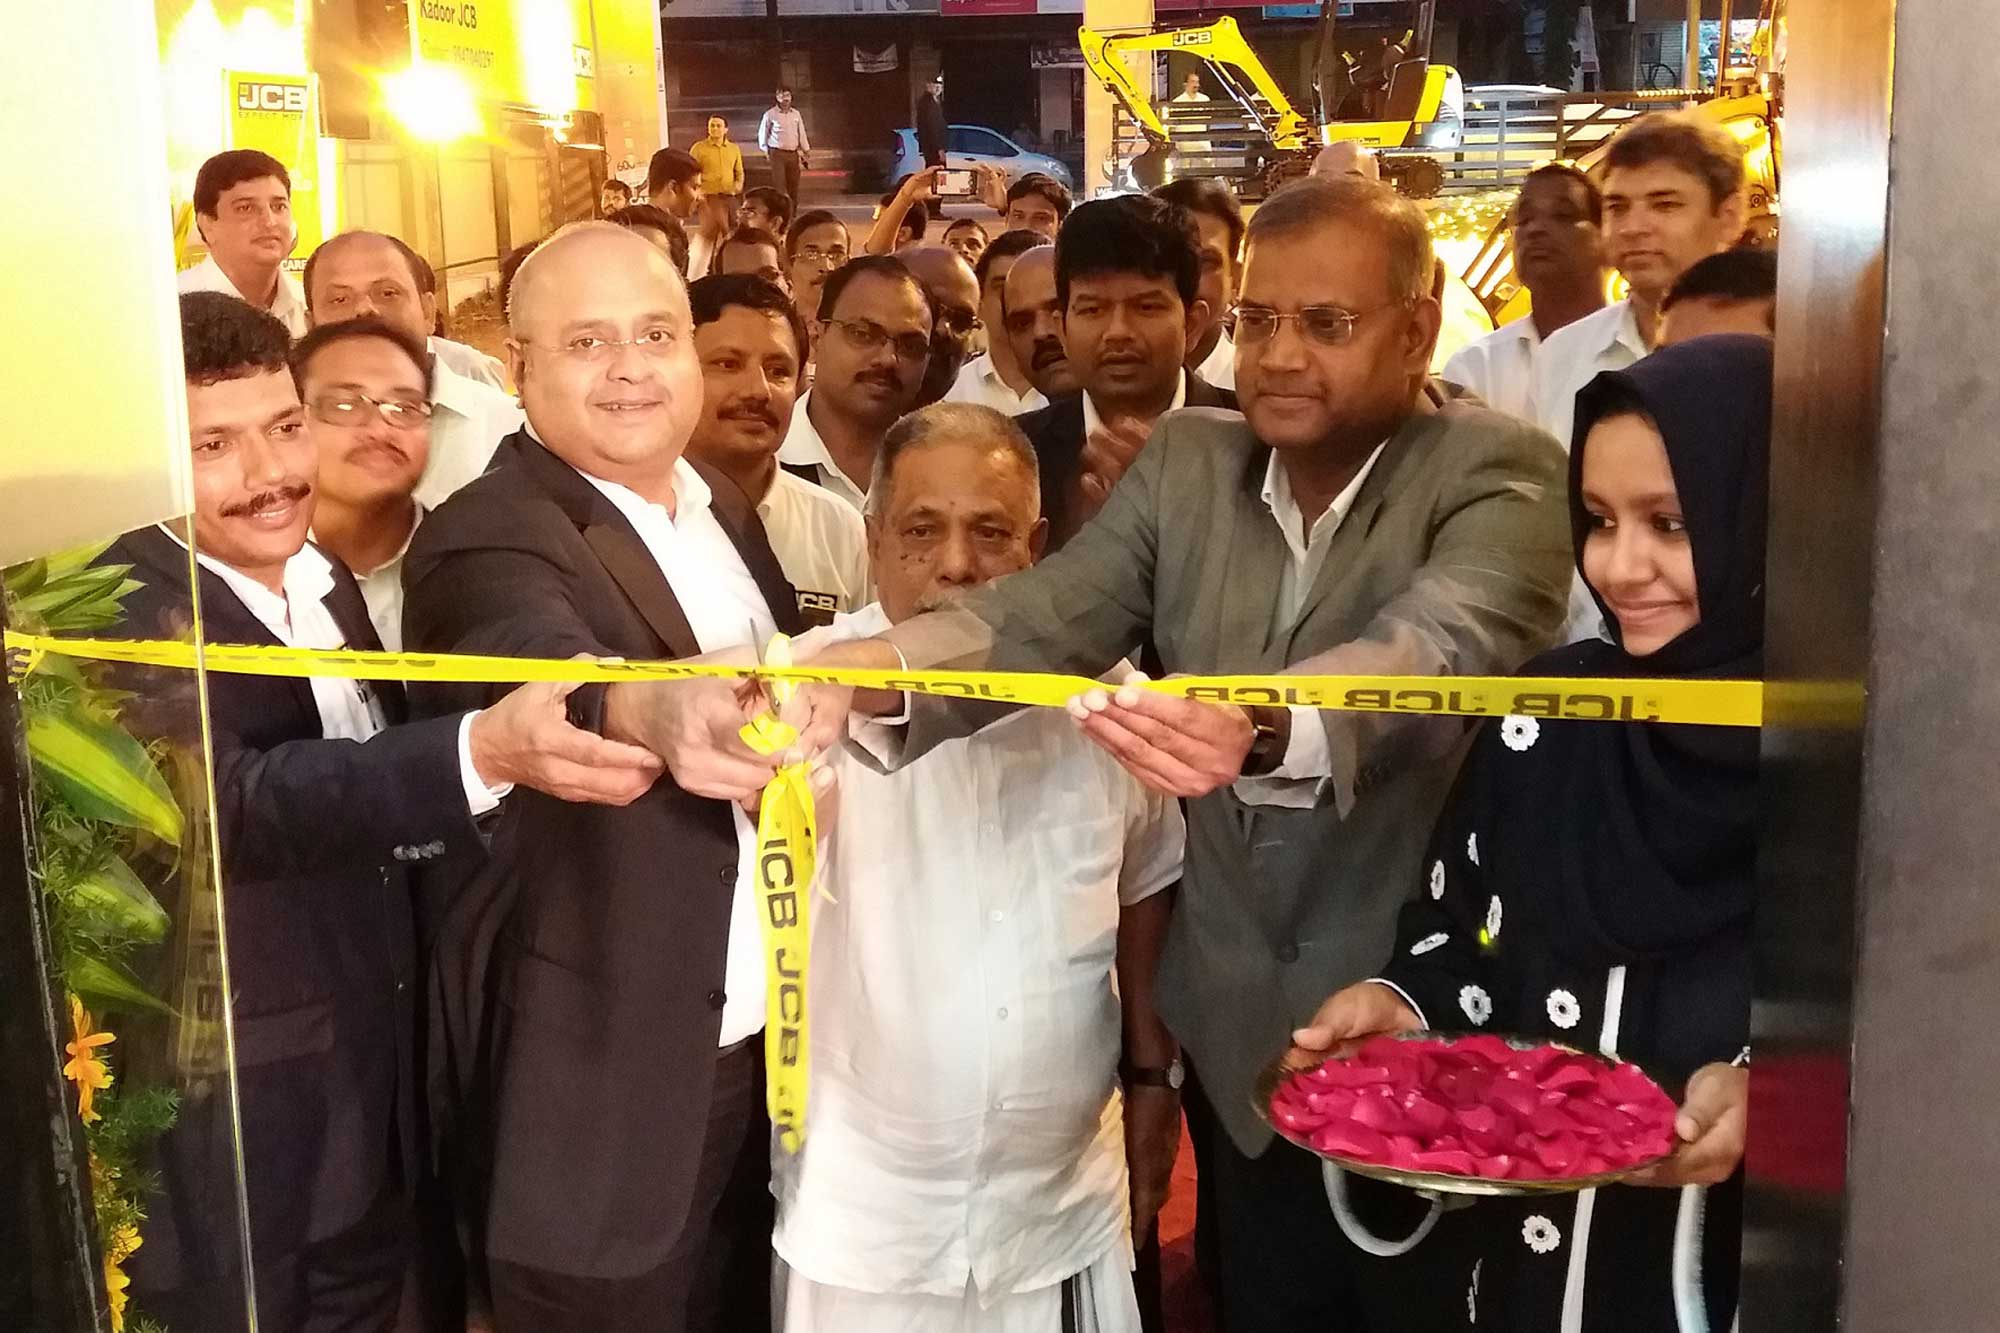 JCB India opens new dealership facility in Kozhikode